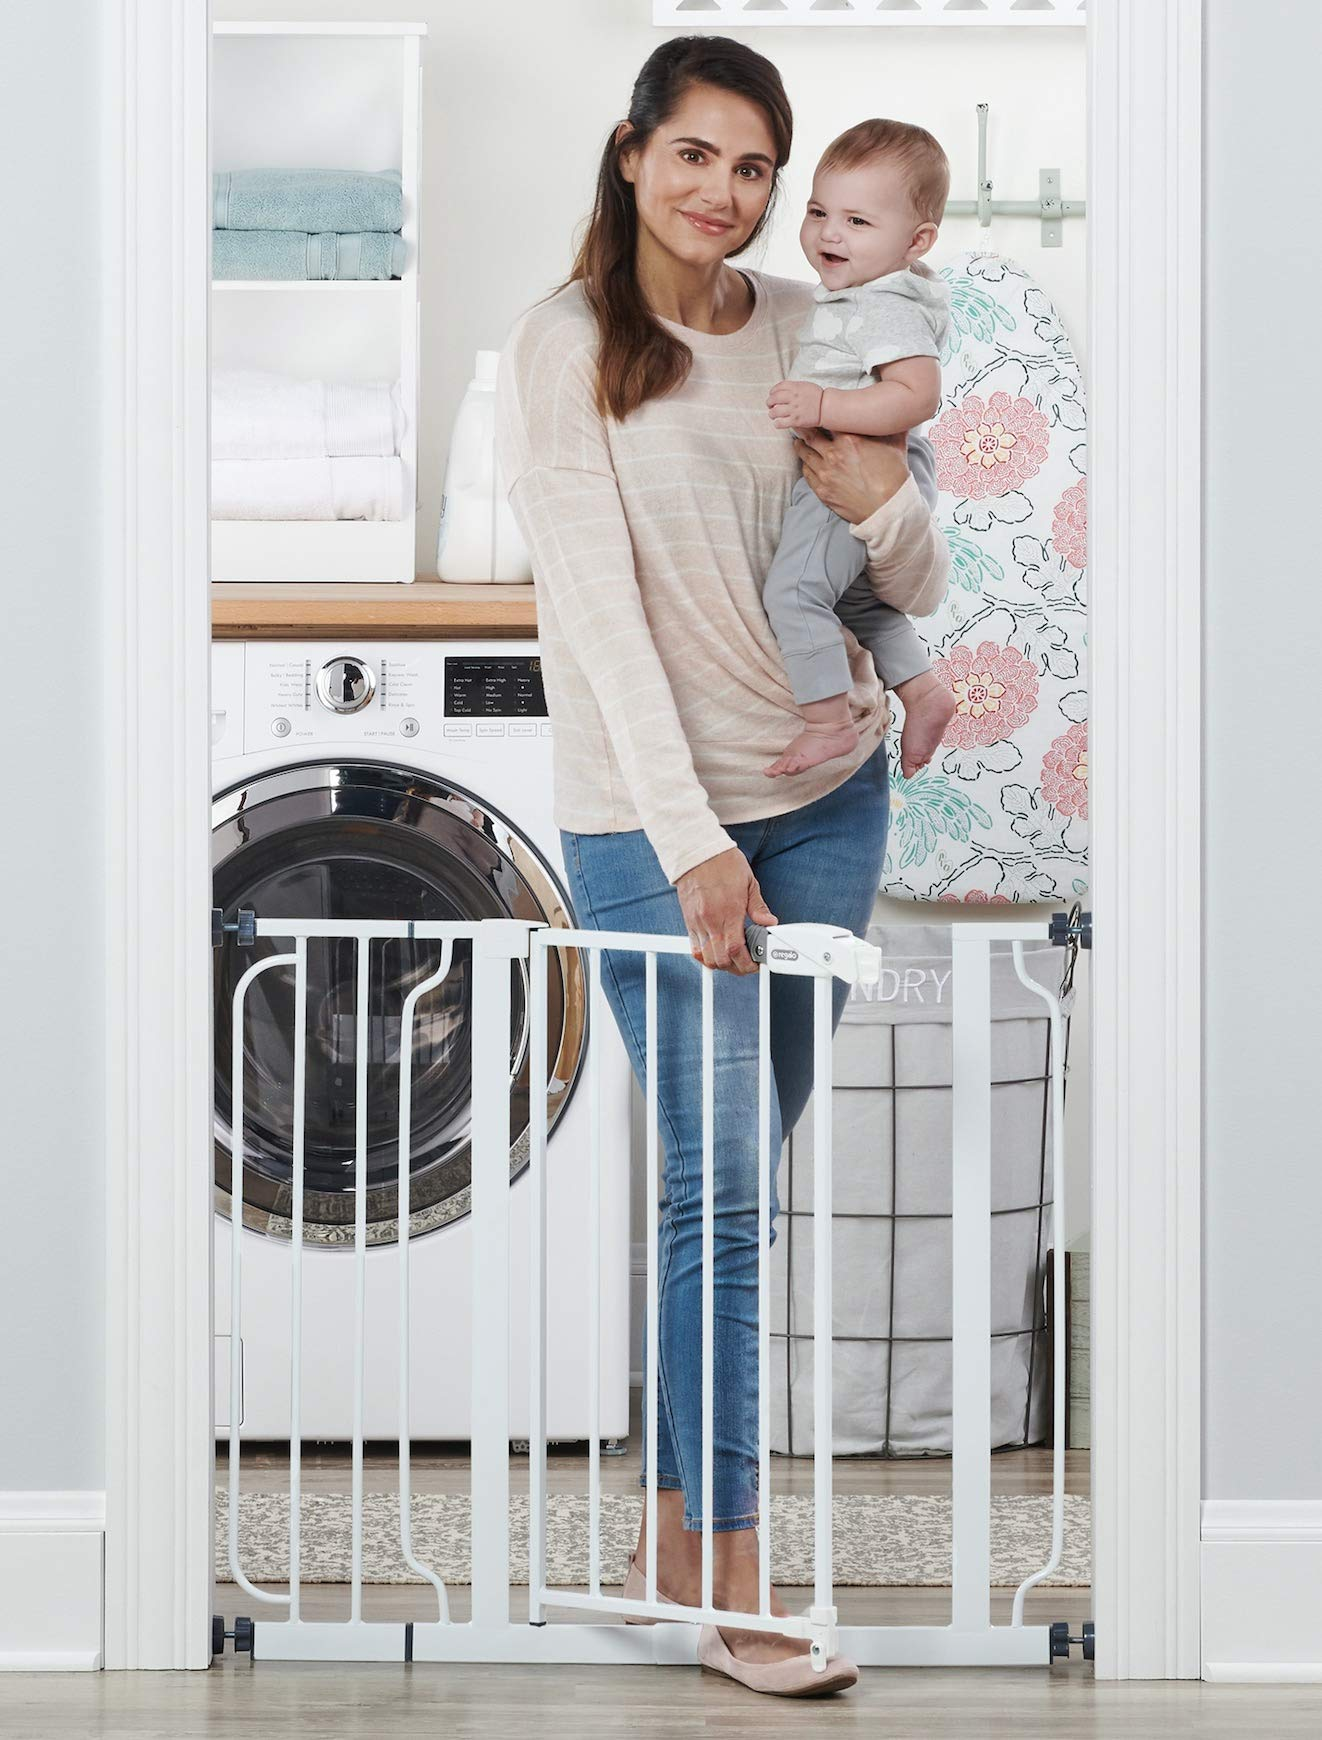 Regalo Easy Step 38.5-Inch Extra Wide Walk Thru Baby Gate, Includes 6-Inch Extension Kit, 4 Pack Pressure Mount Kit, 4 Pack Wall Cups and Mounting Kit by Regalo